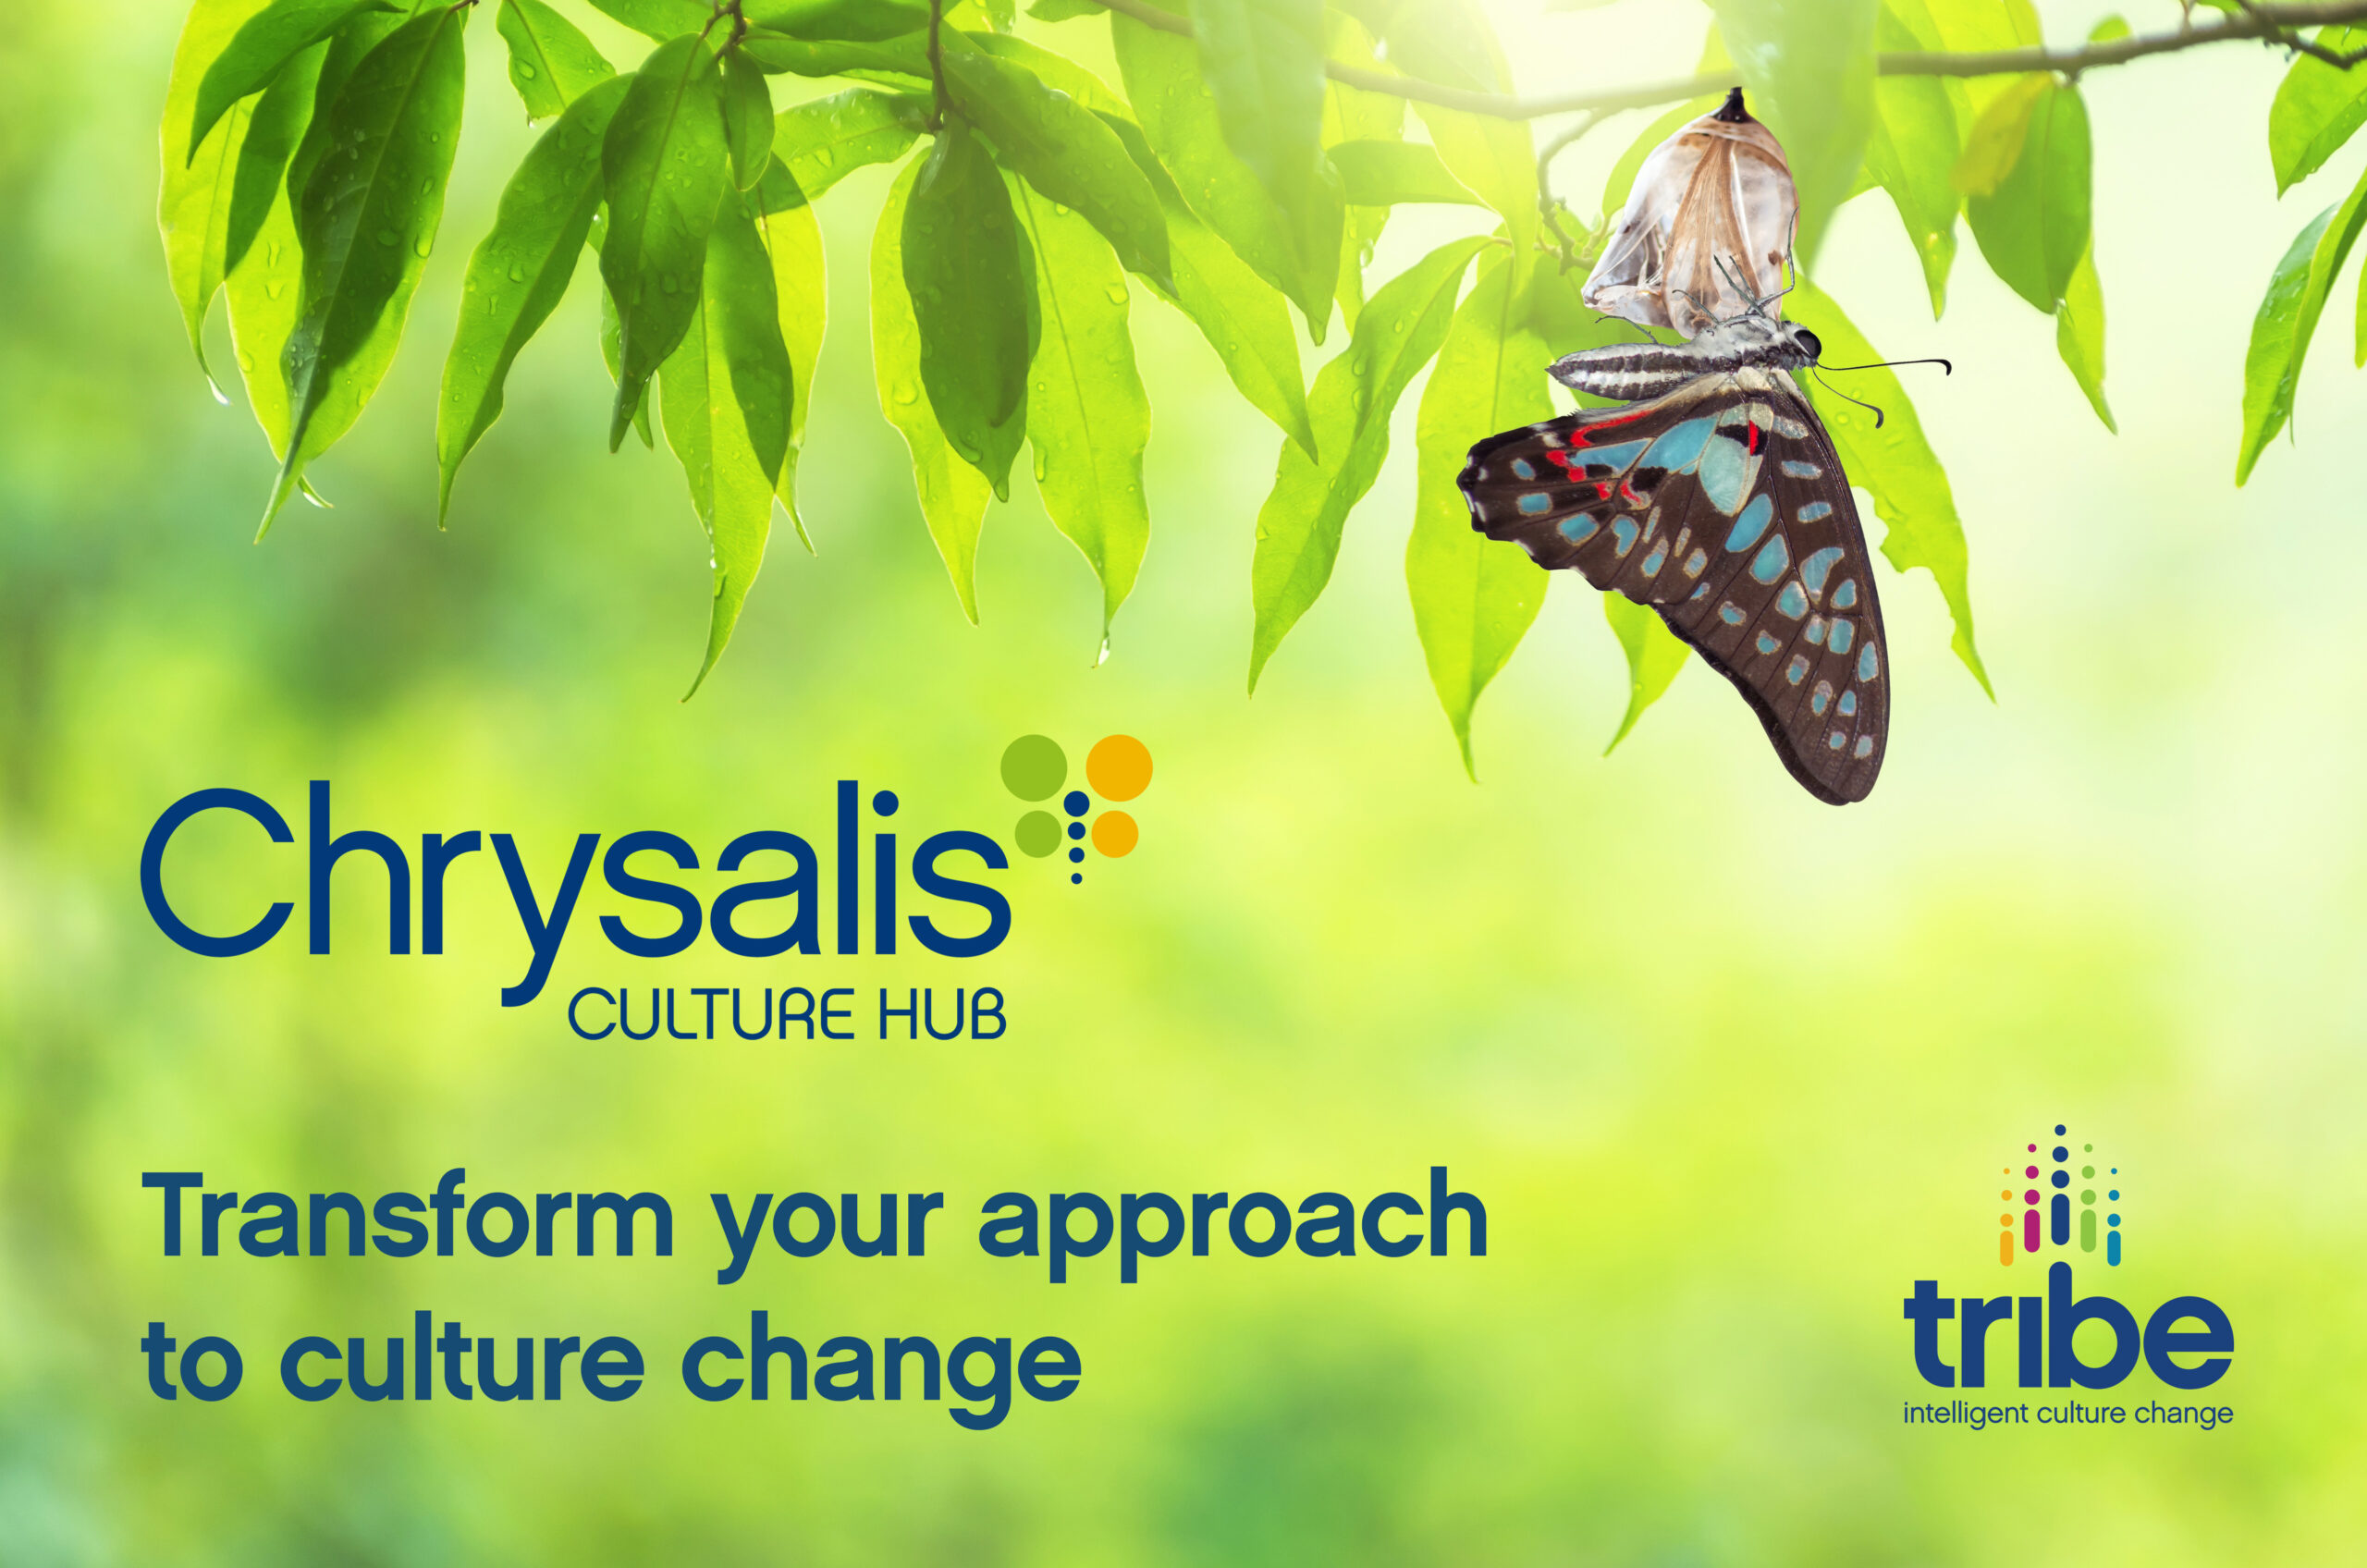 Transform your approach to culture change with the new Chrysalis Culture Hub